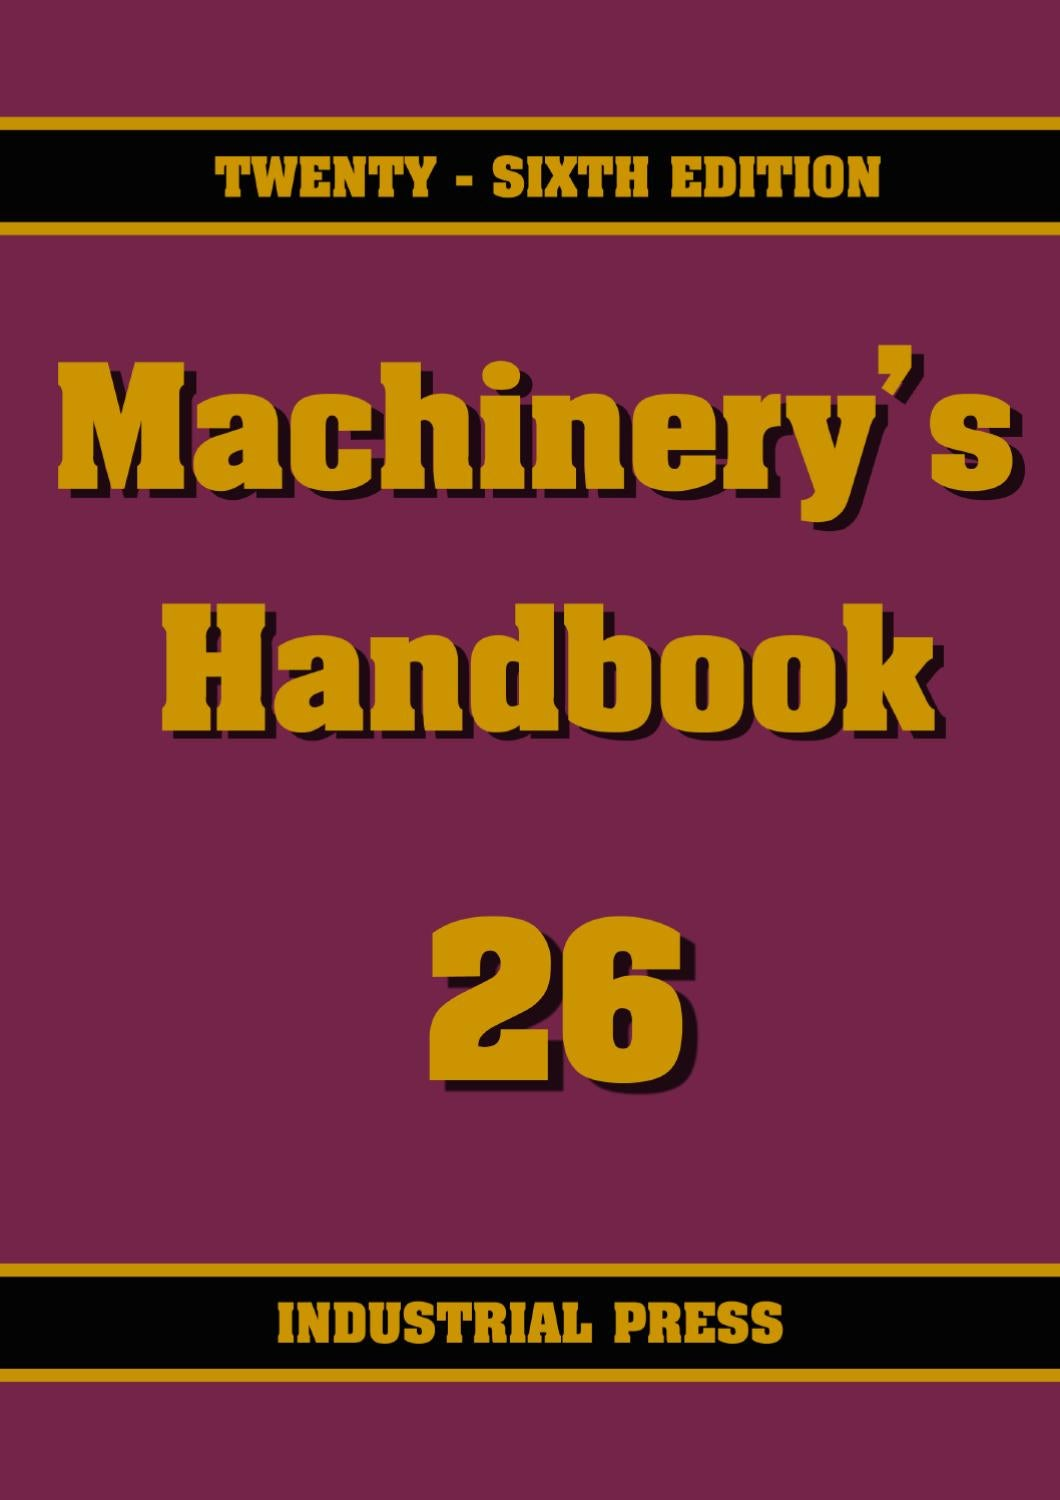 Machinery's Handbook, 18th ed.1970, Oberg and Jones, Mechanical Eng., Drafting,